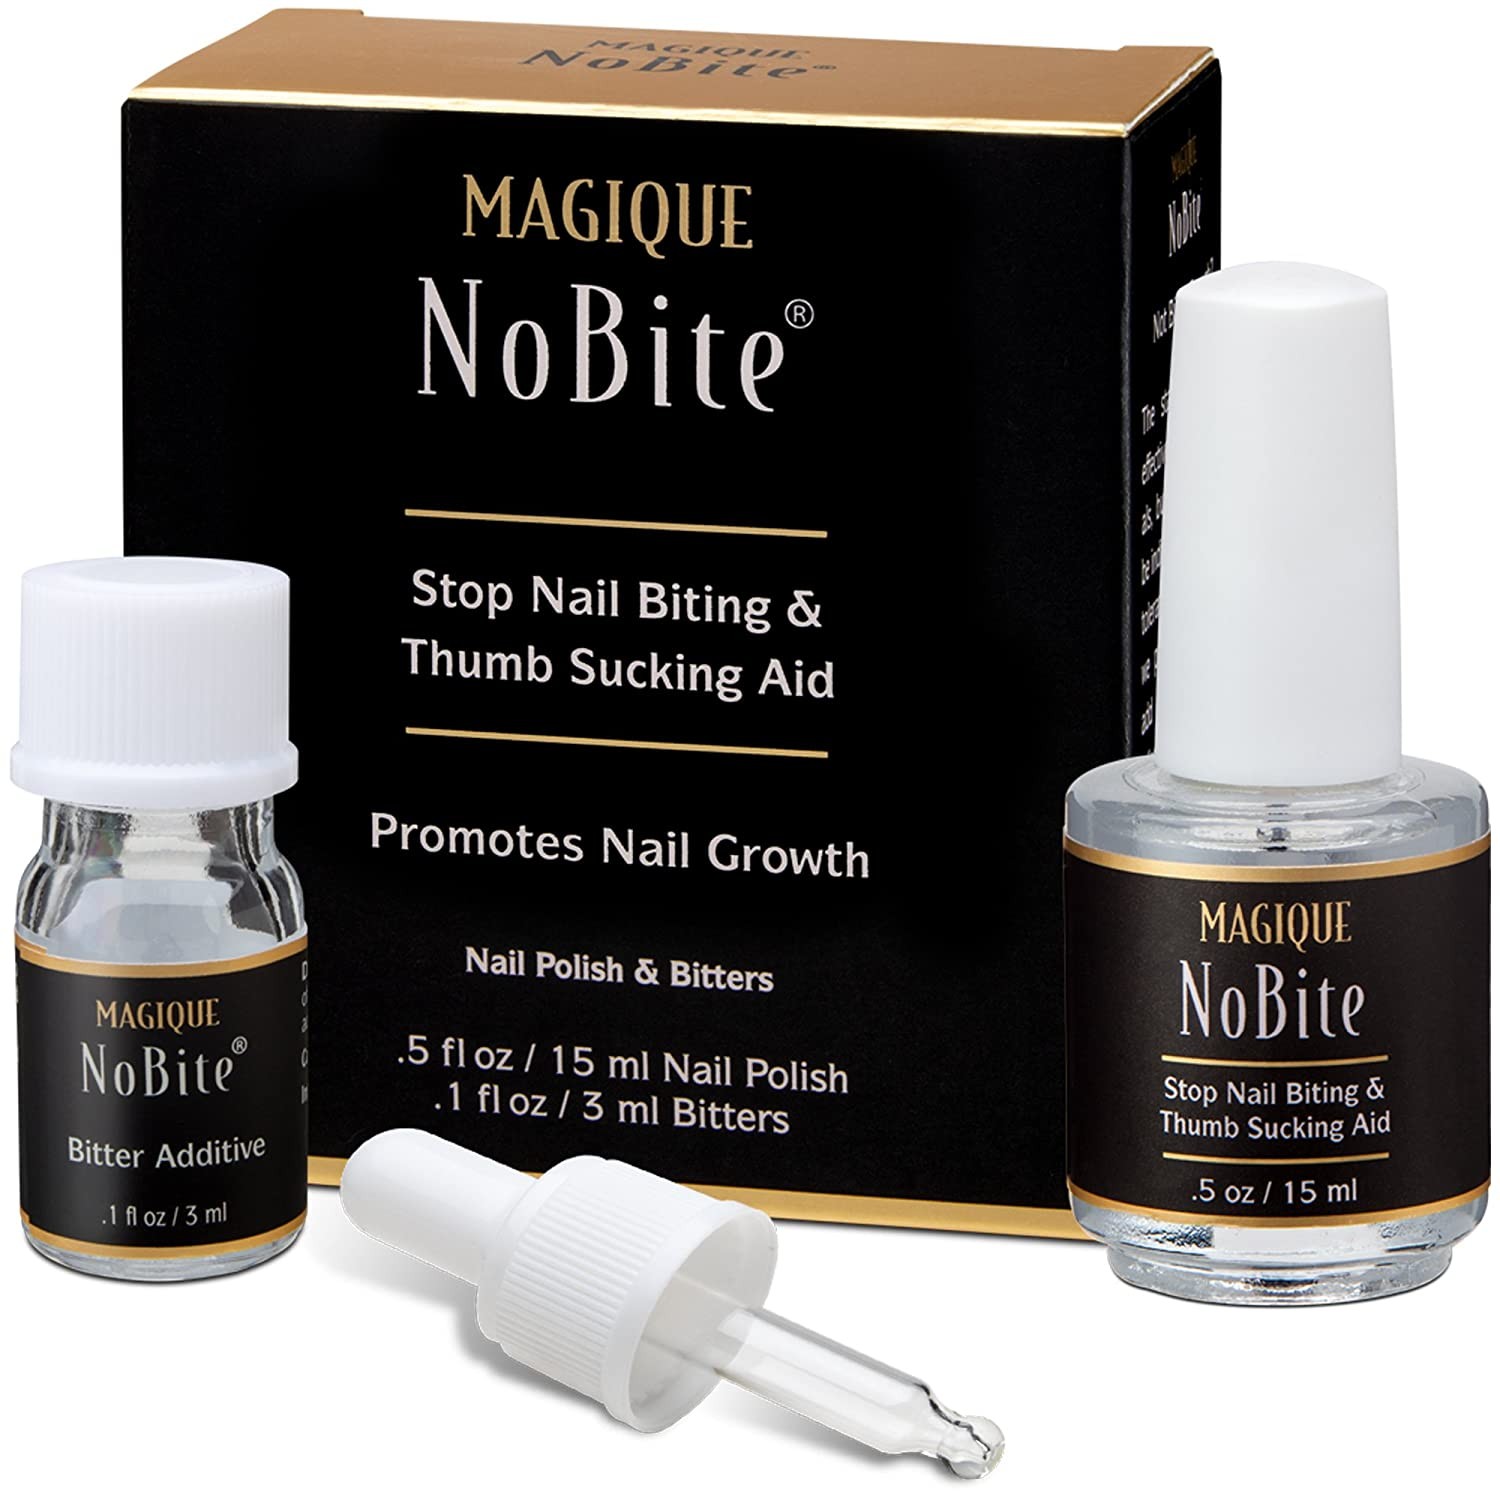 Stop Nail Biting, Stop Thumb Sucking Treatment for Kids & Adults - Promotes Nail Growth - Magique No Bite, 0.5-Fluid Ounce MAG-NB15